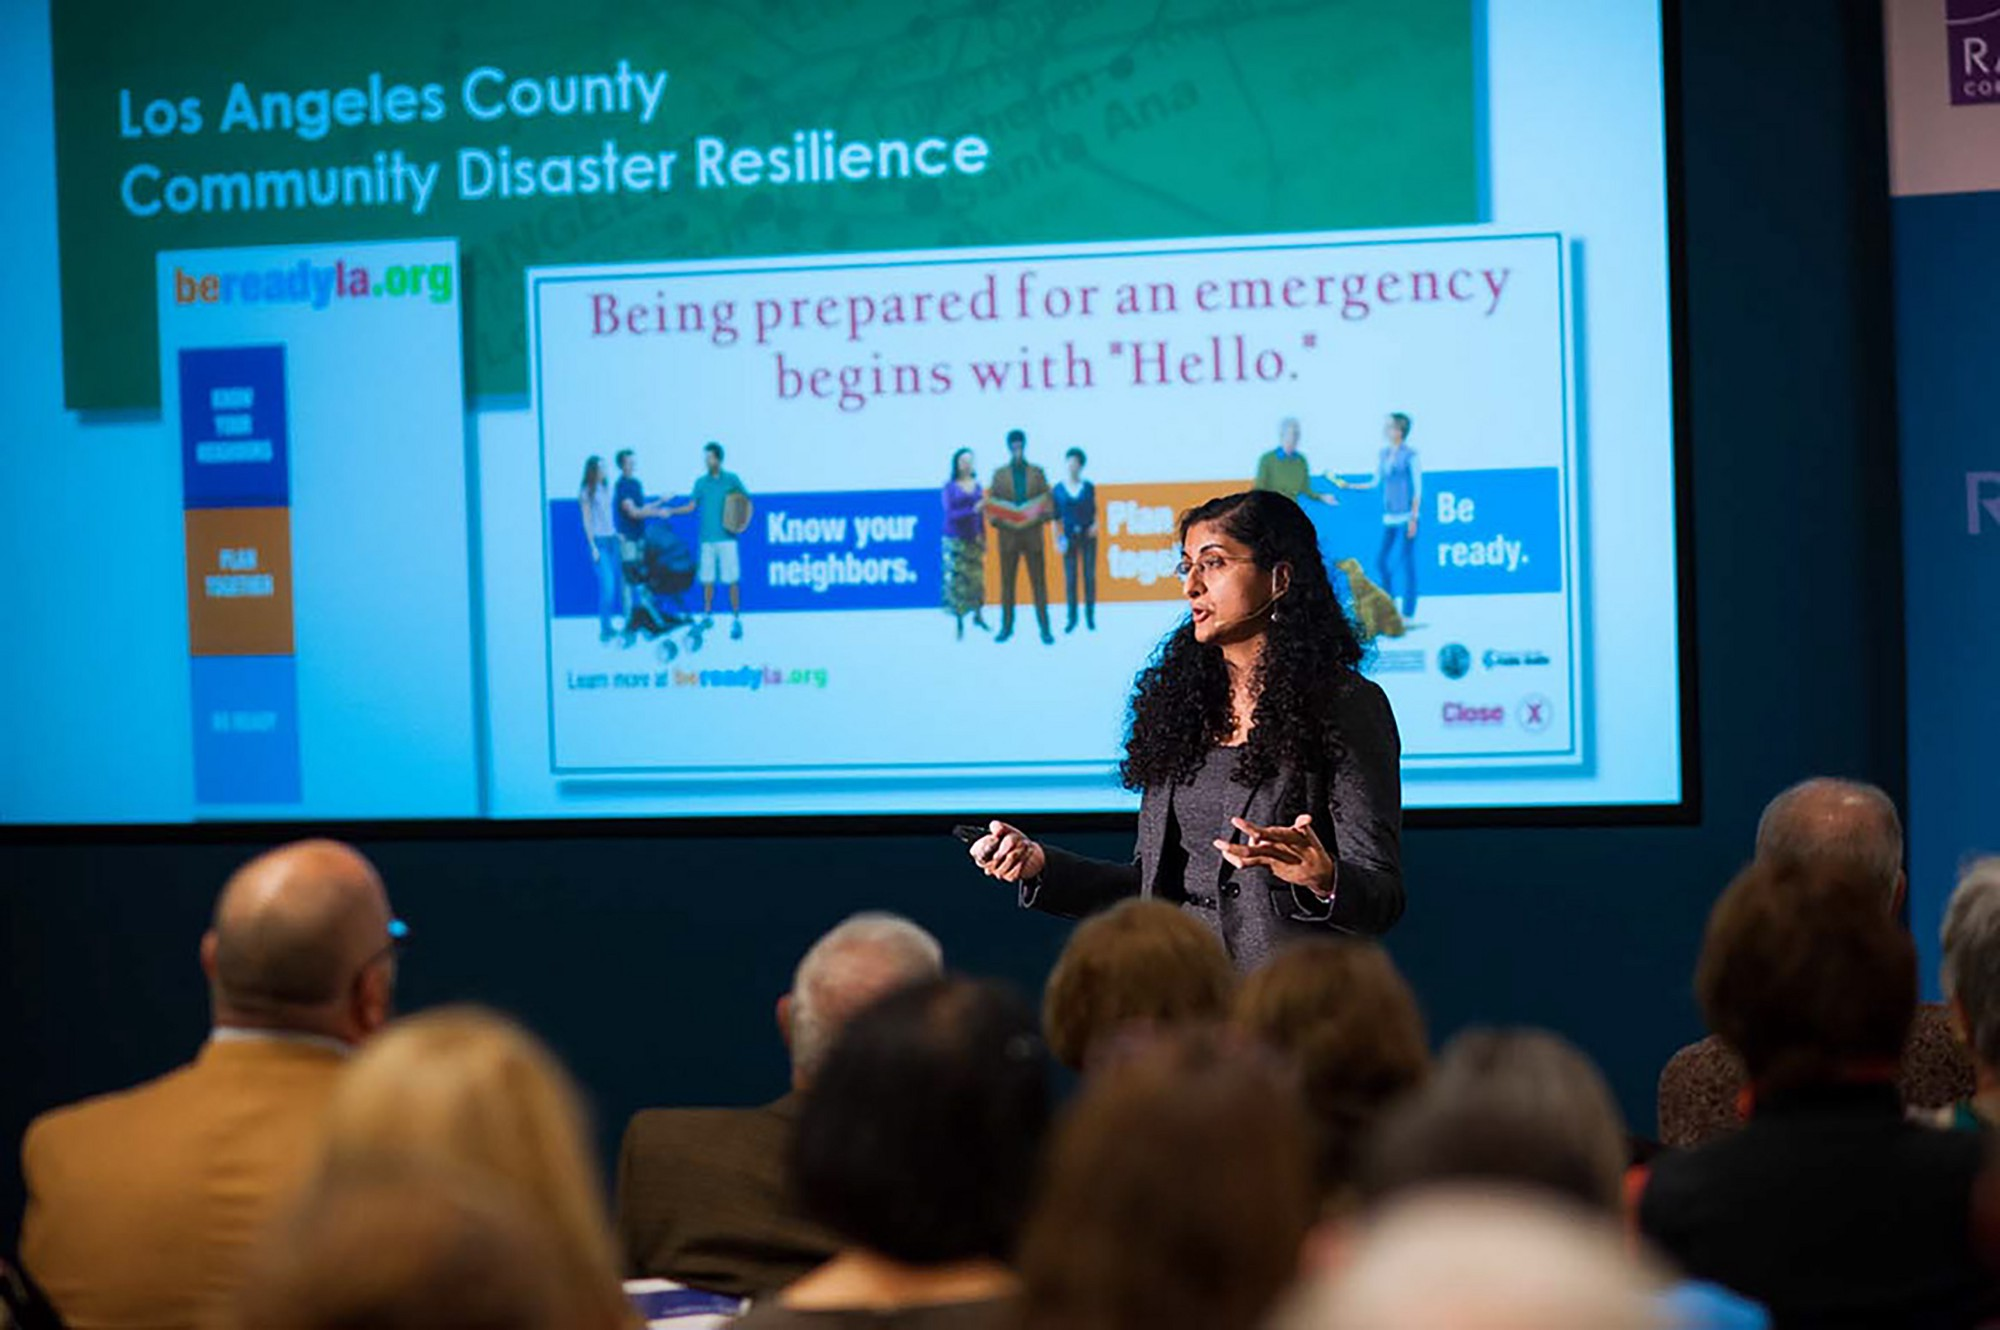 Anita Chandra speaking at a community resilience event at RAND's Santa Monica headquarters. Photo by Diane Baldwin/RAND Corporation